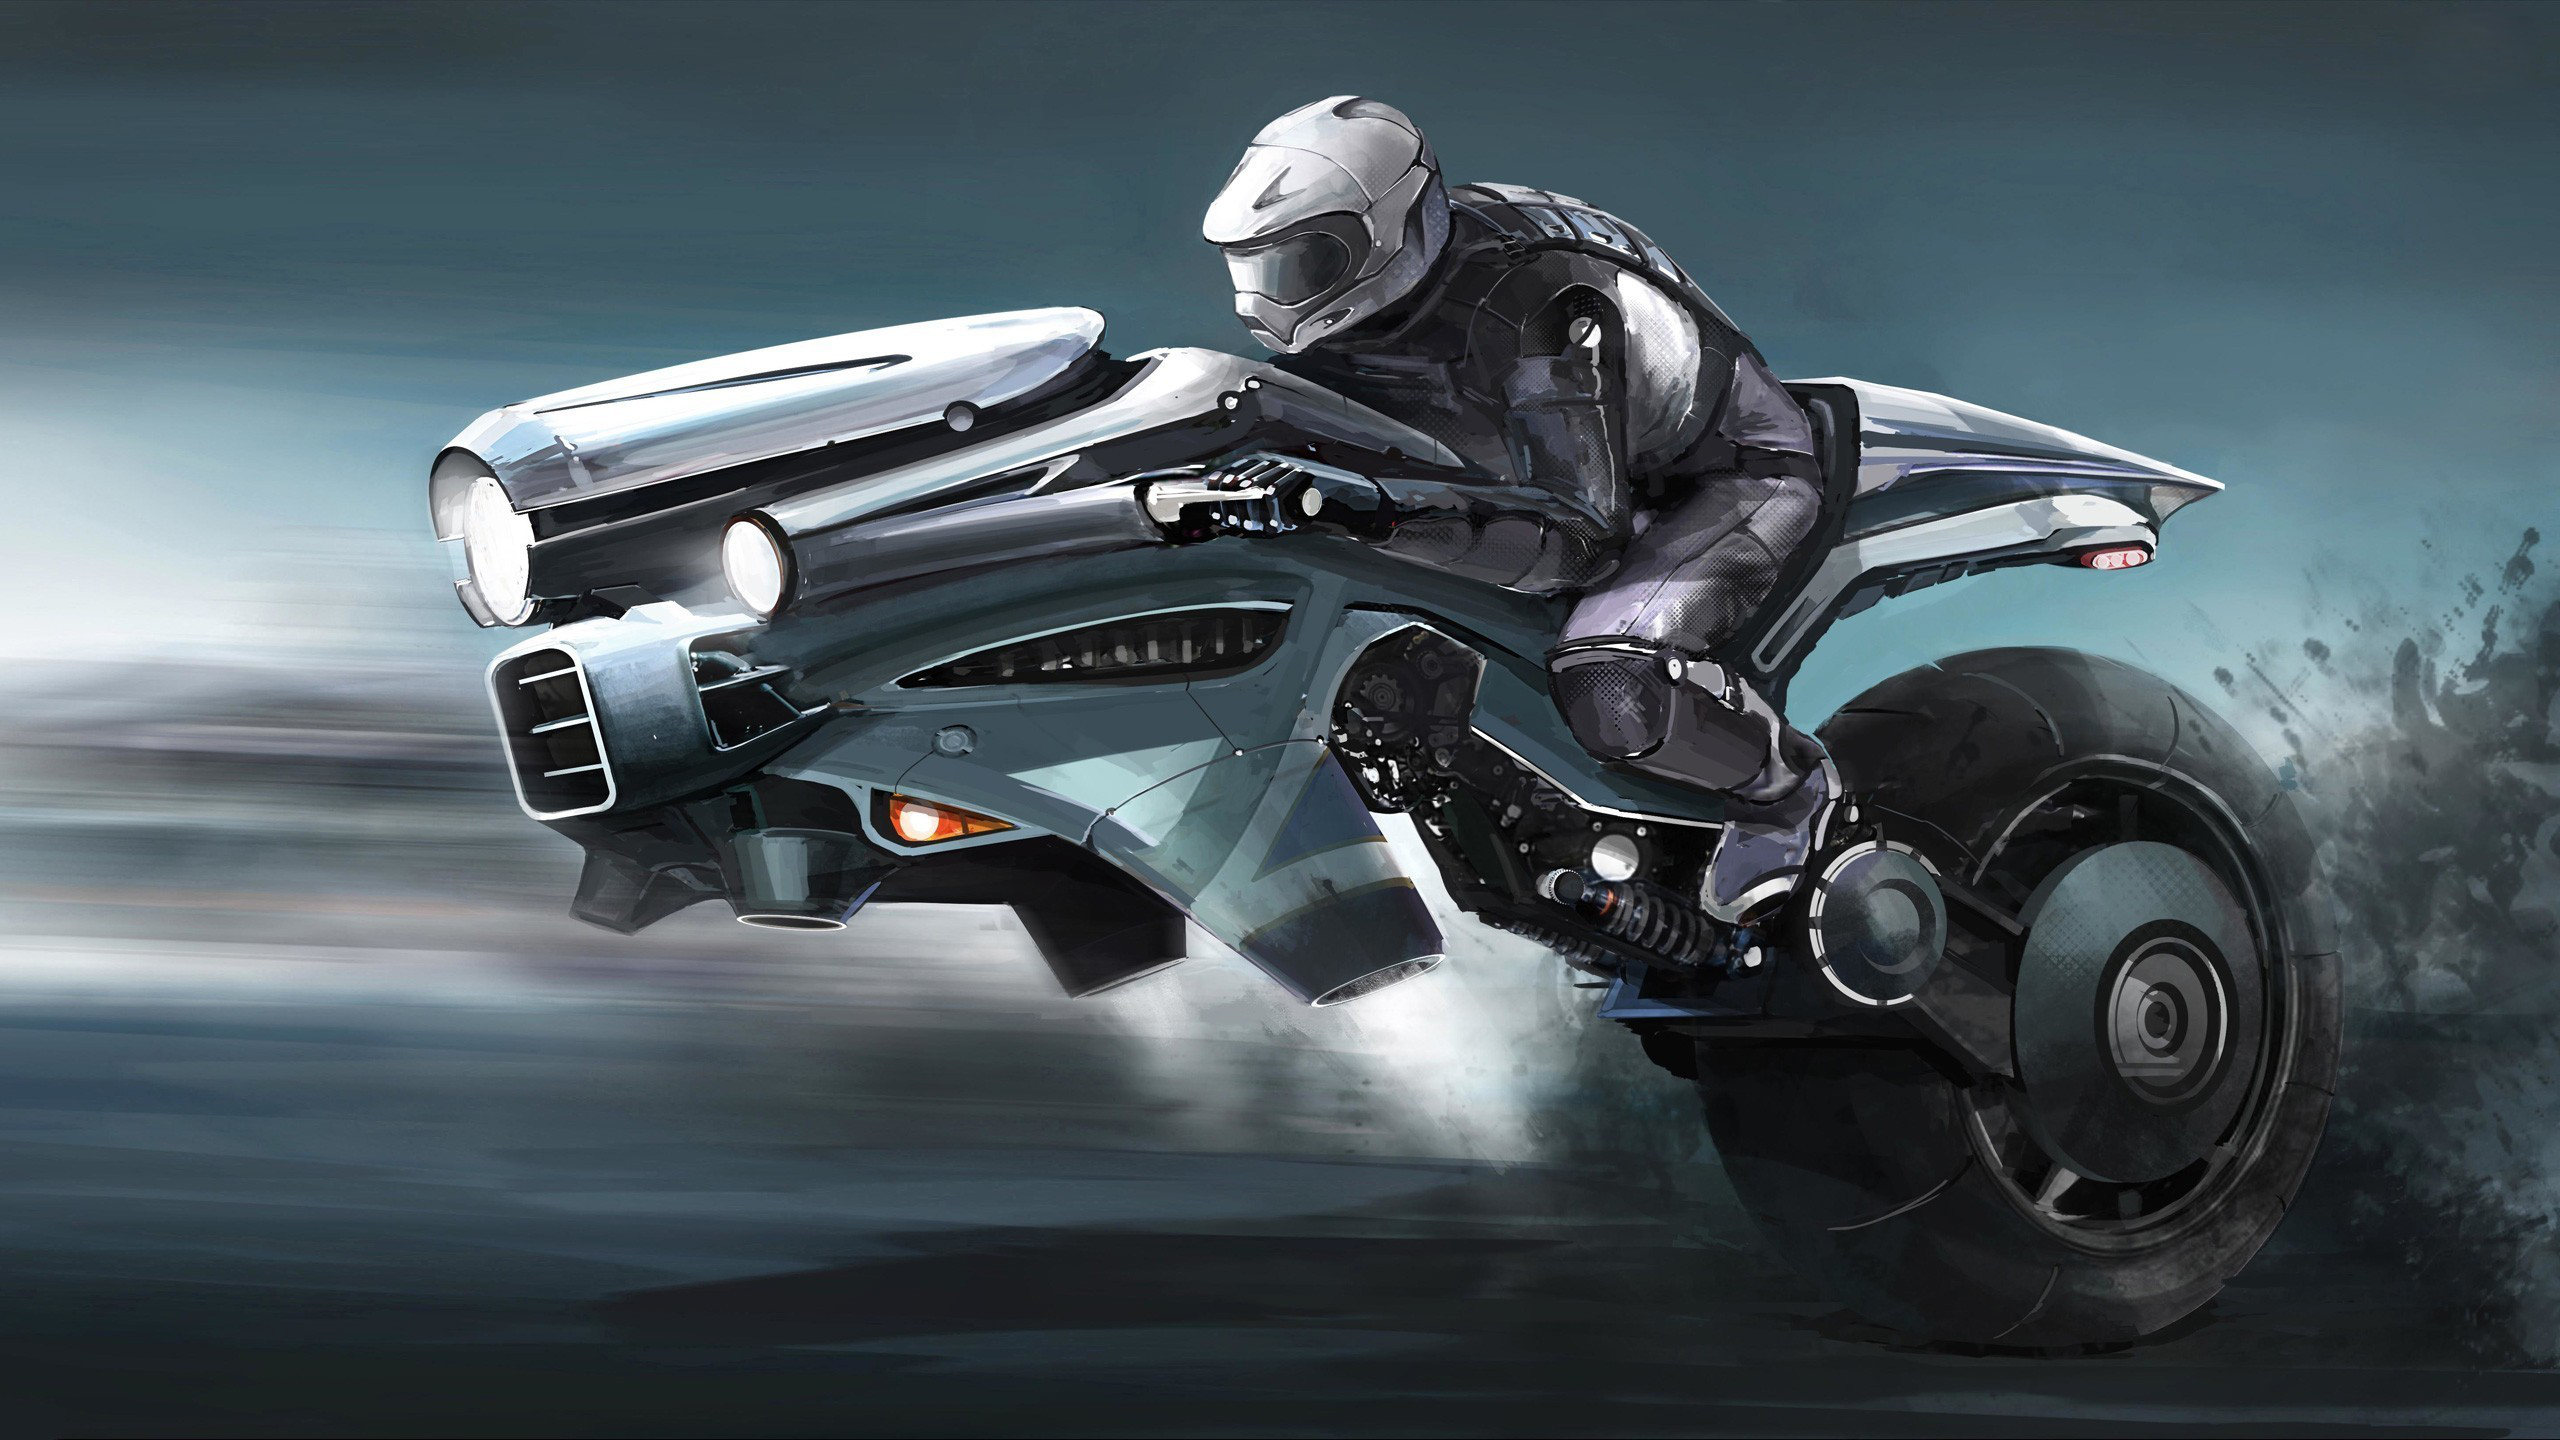 Motorcycle Full Hd Wallpaper And Background Image 2560x1440 Id 529579